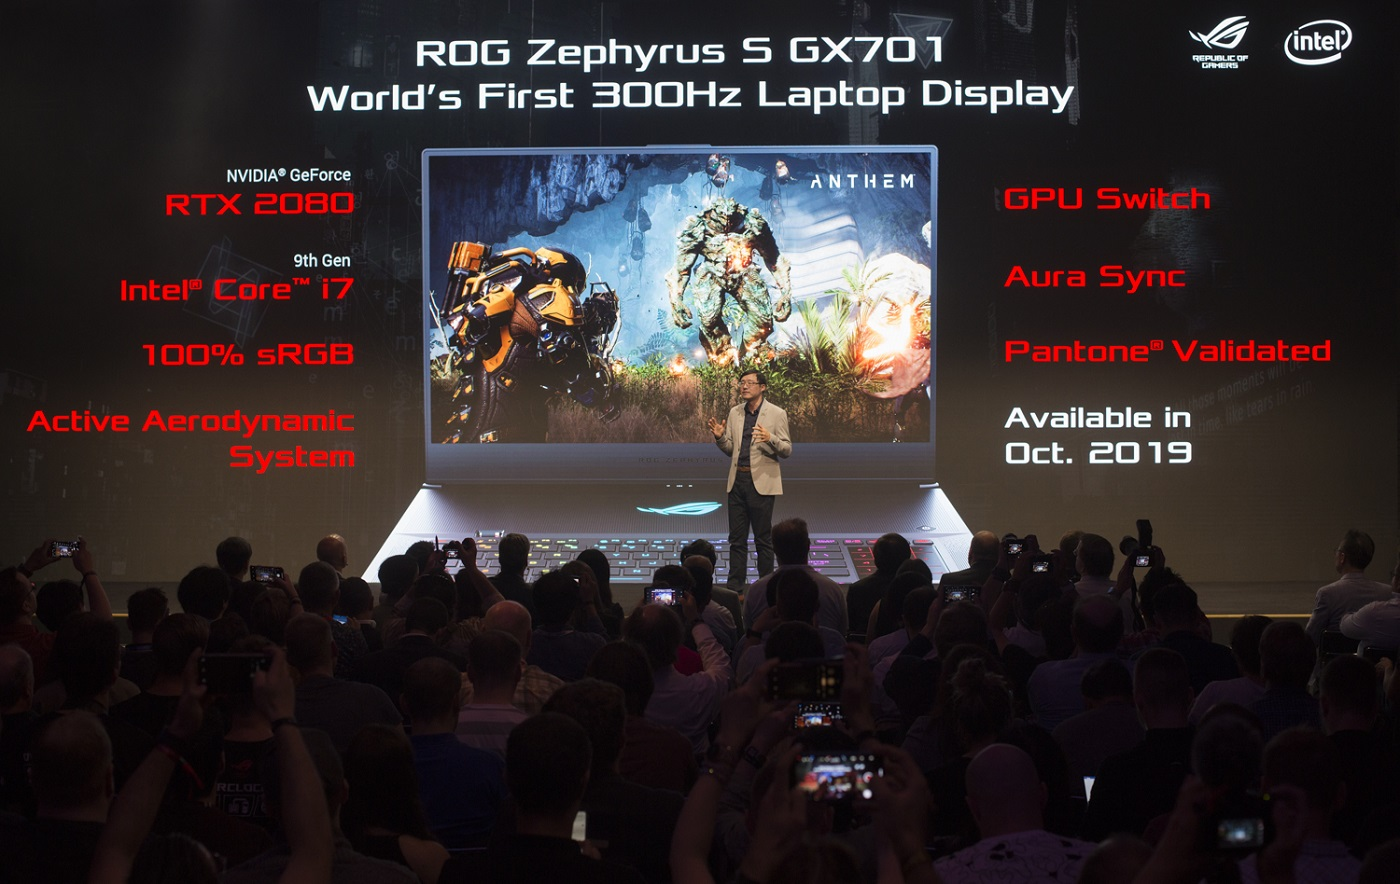 asus-is-the-first-to-demonstrate-300hz-gaming-laptop-displays-and-it-will-be-available-in-rog-jpg.8052